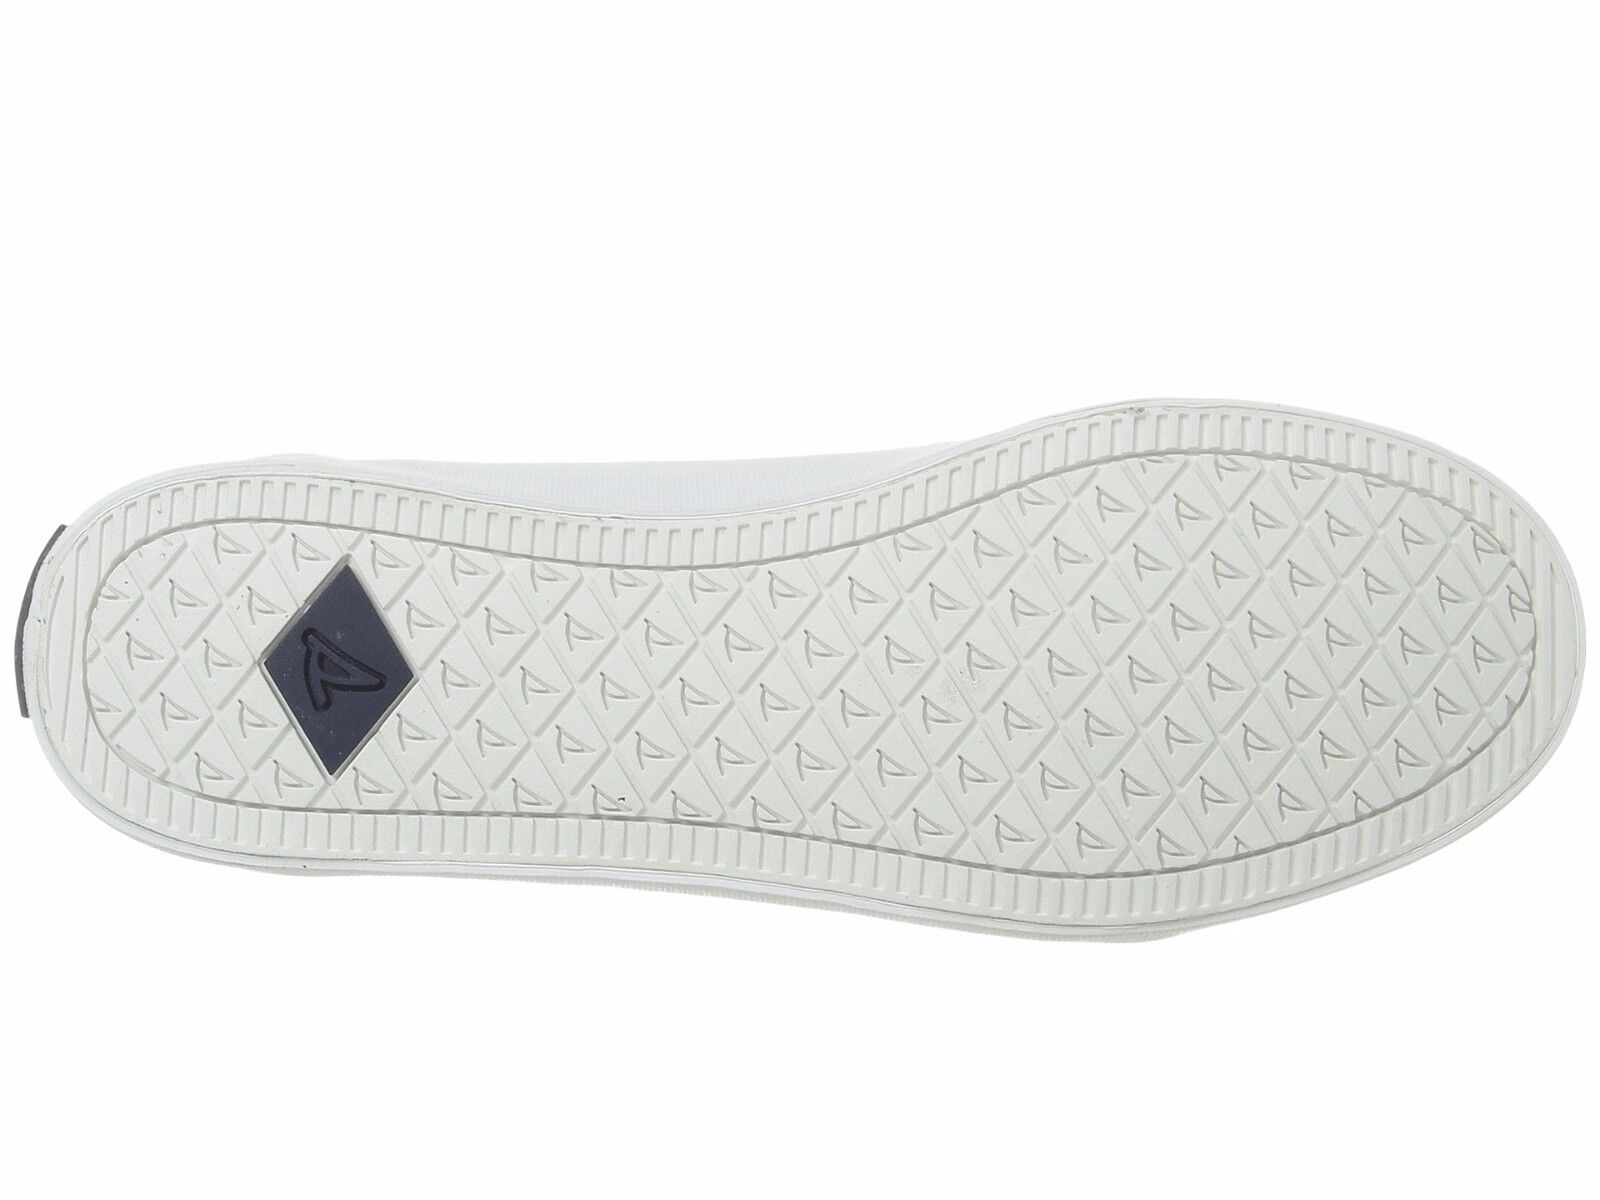 Sperry Top-Sider Crest Multiple Knoll Canvas Sneackerst Booties Multiple Crest Sizes 828a74